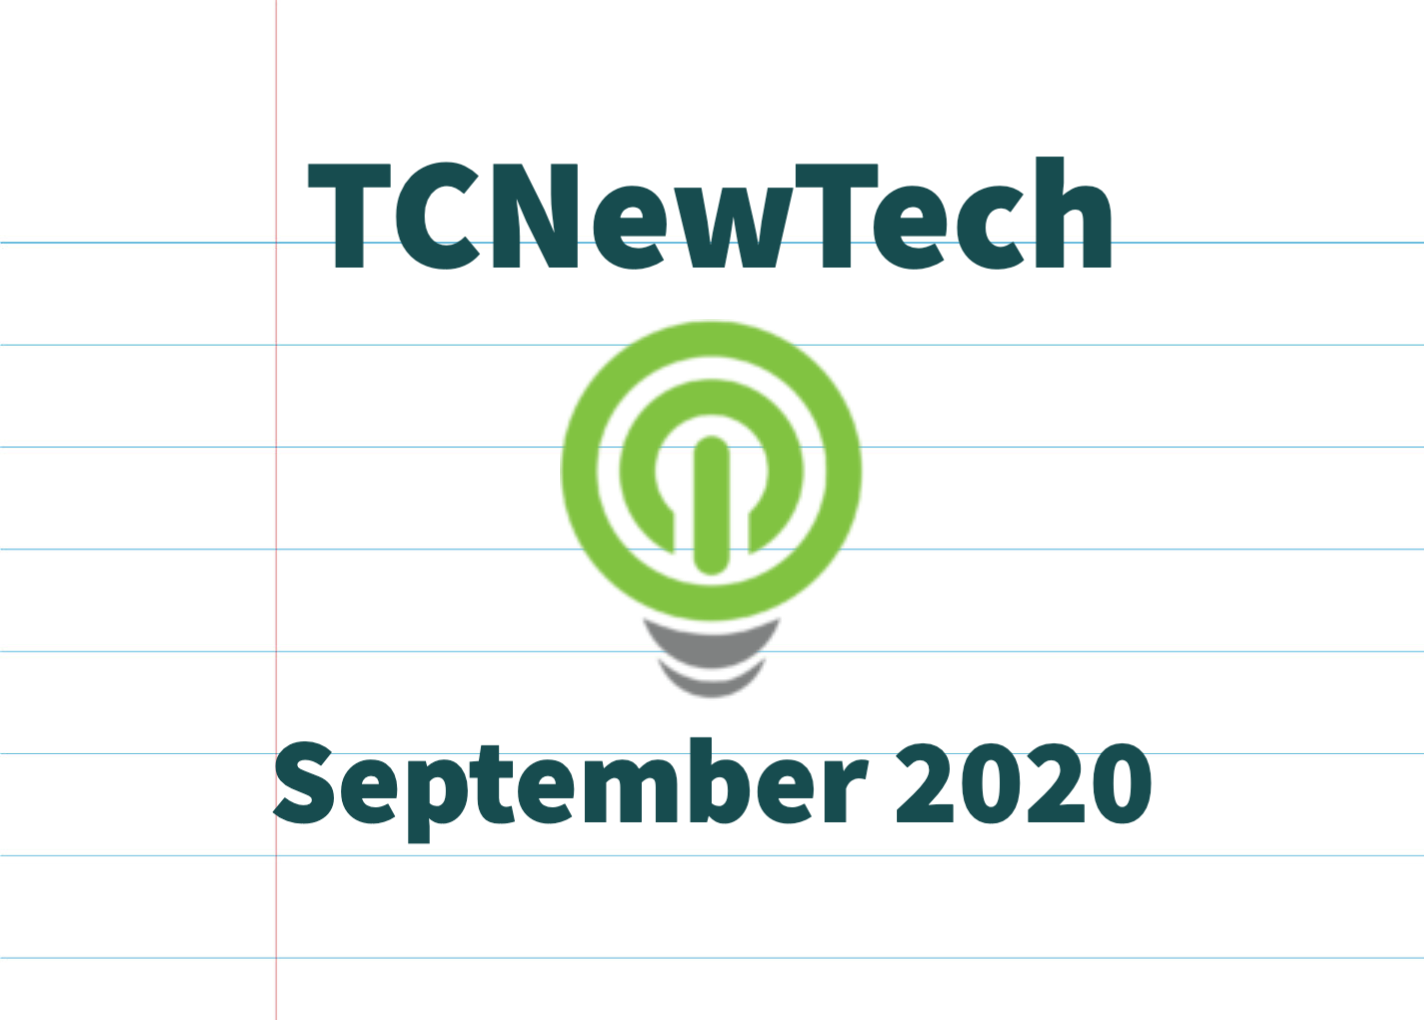 TCNewTech Pitch Contest September 2020